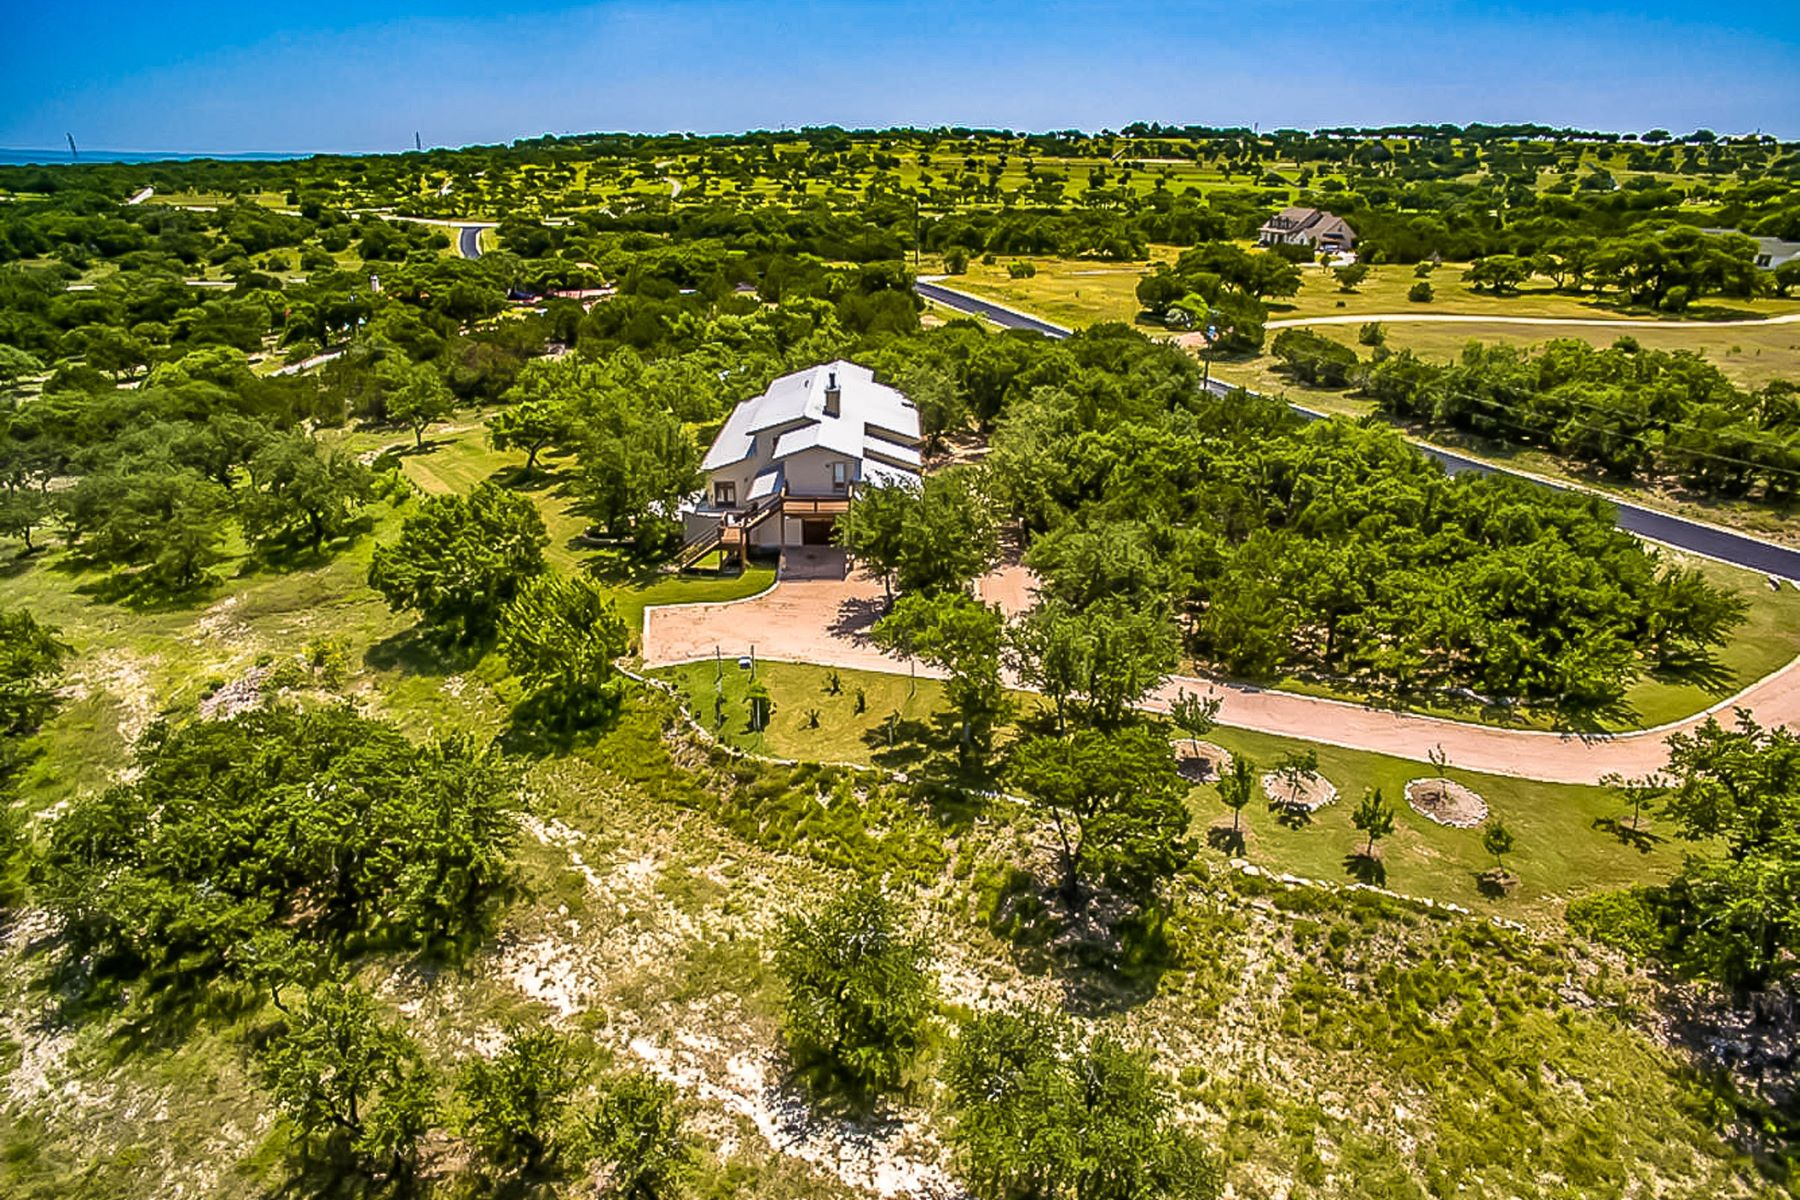 Single Family Home for Sale at Panoramic Views to the Hill Country 140 Granite Ridge Dr Spicewood, Texas 78669 United States